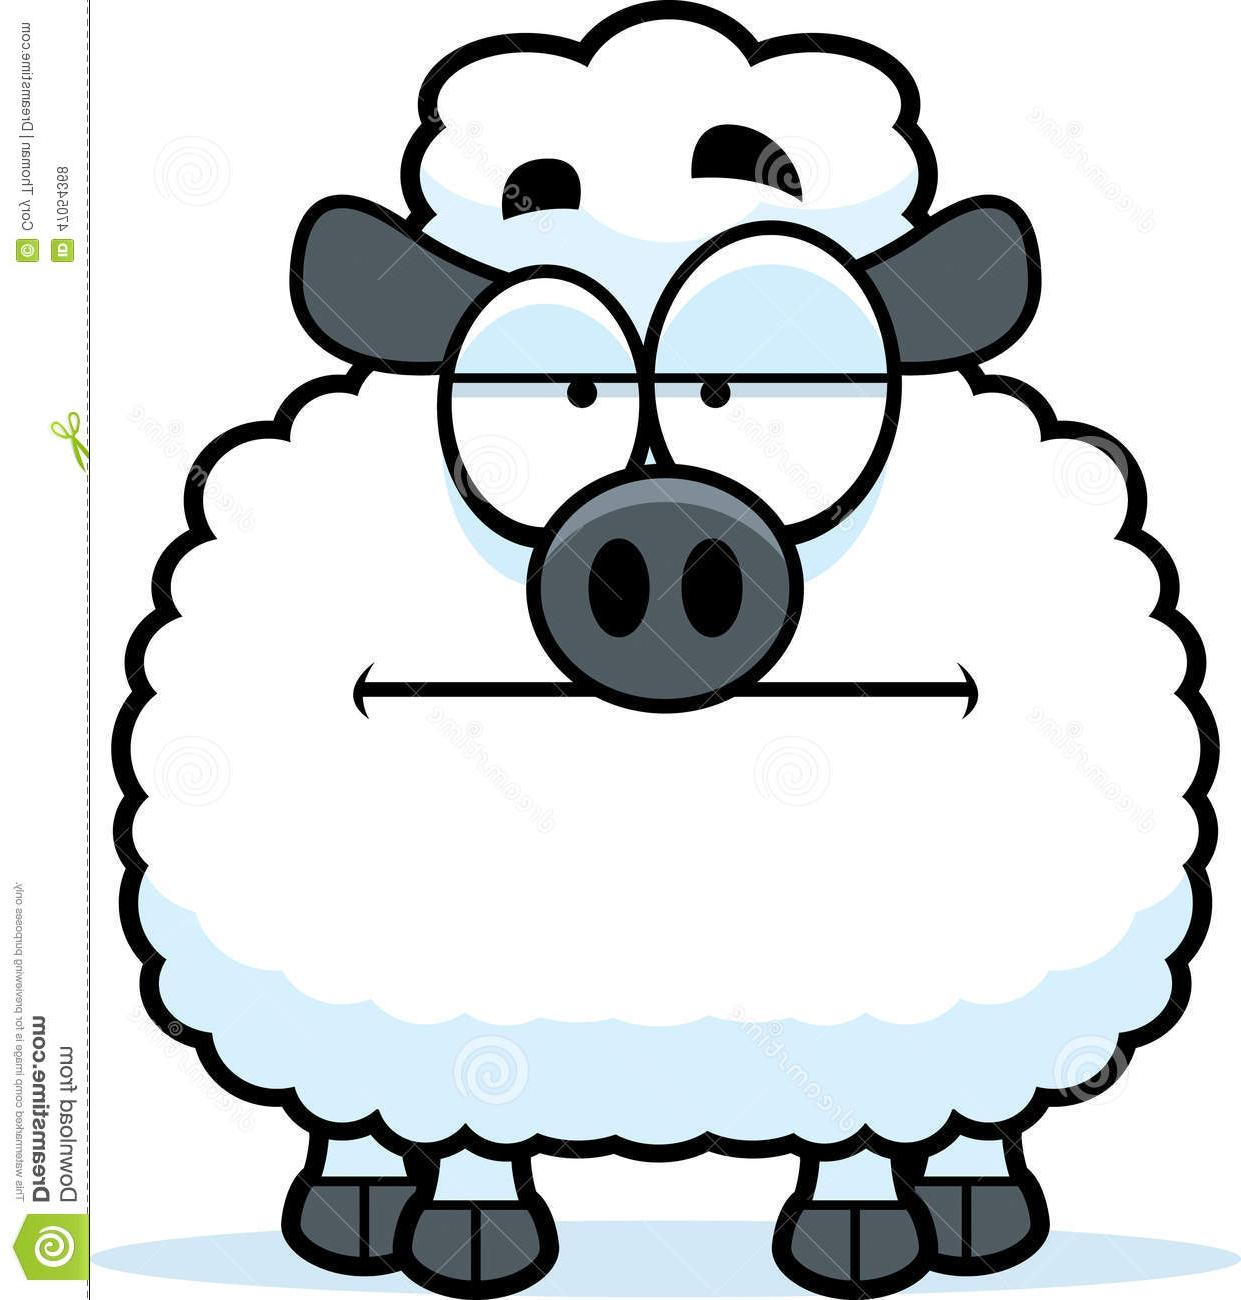 1241x1300 Best Free Bored Little Lamb Cartoon Illustration Looking Drawing